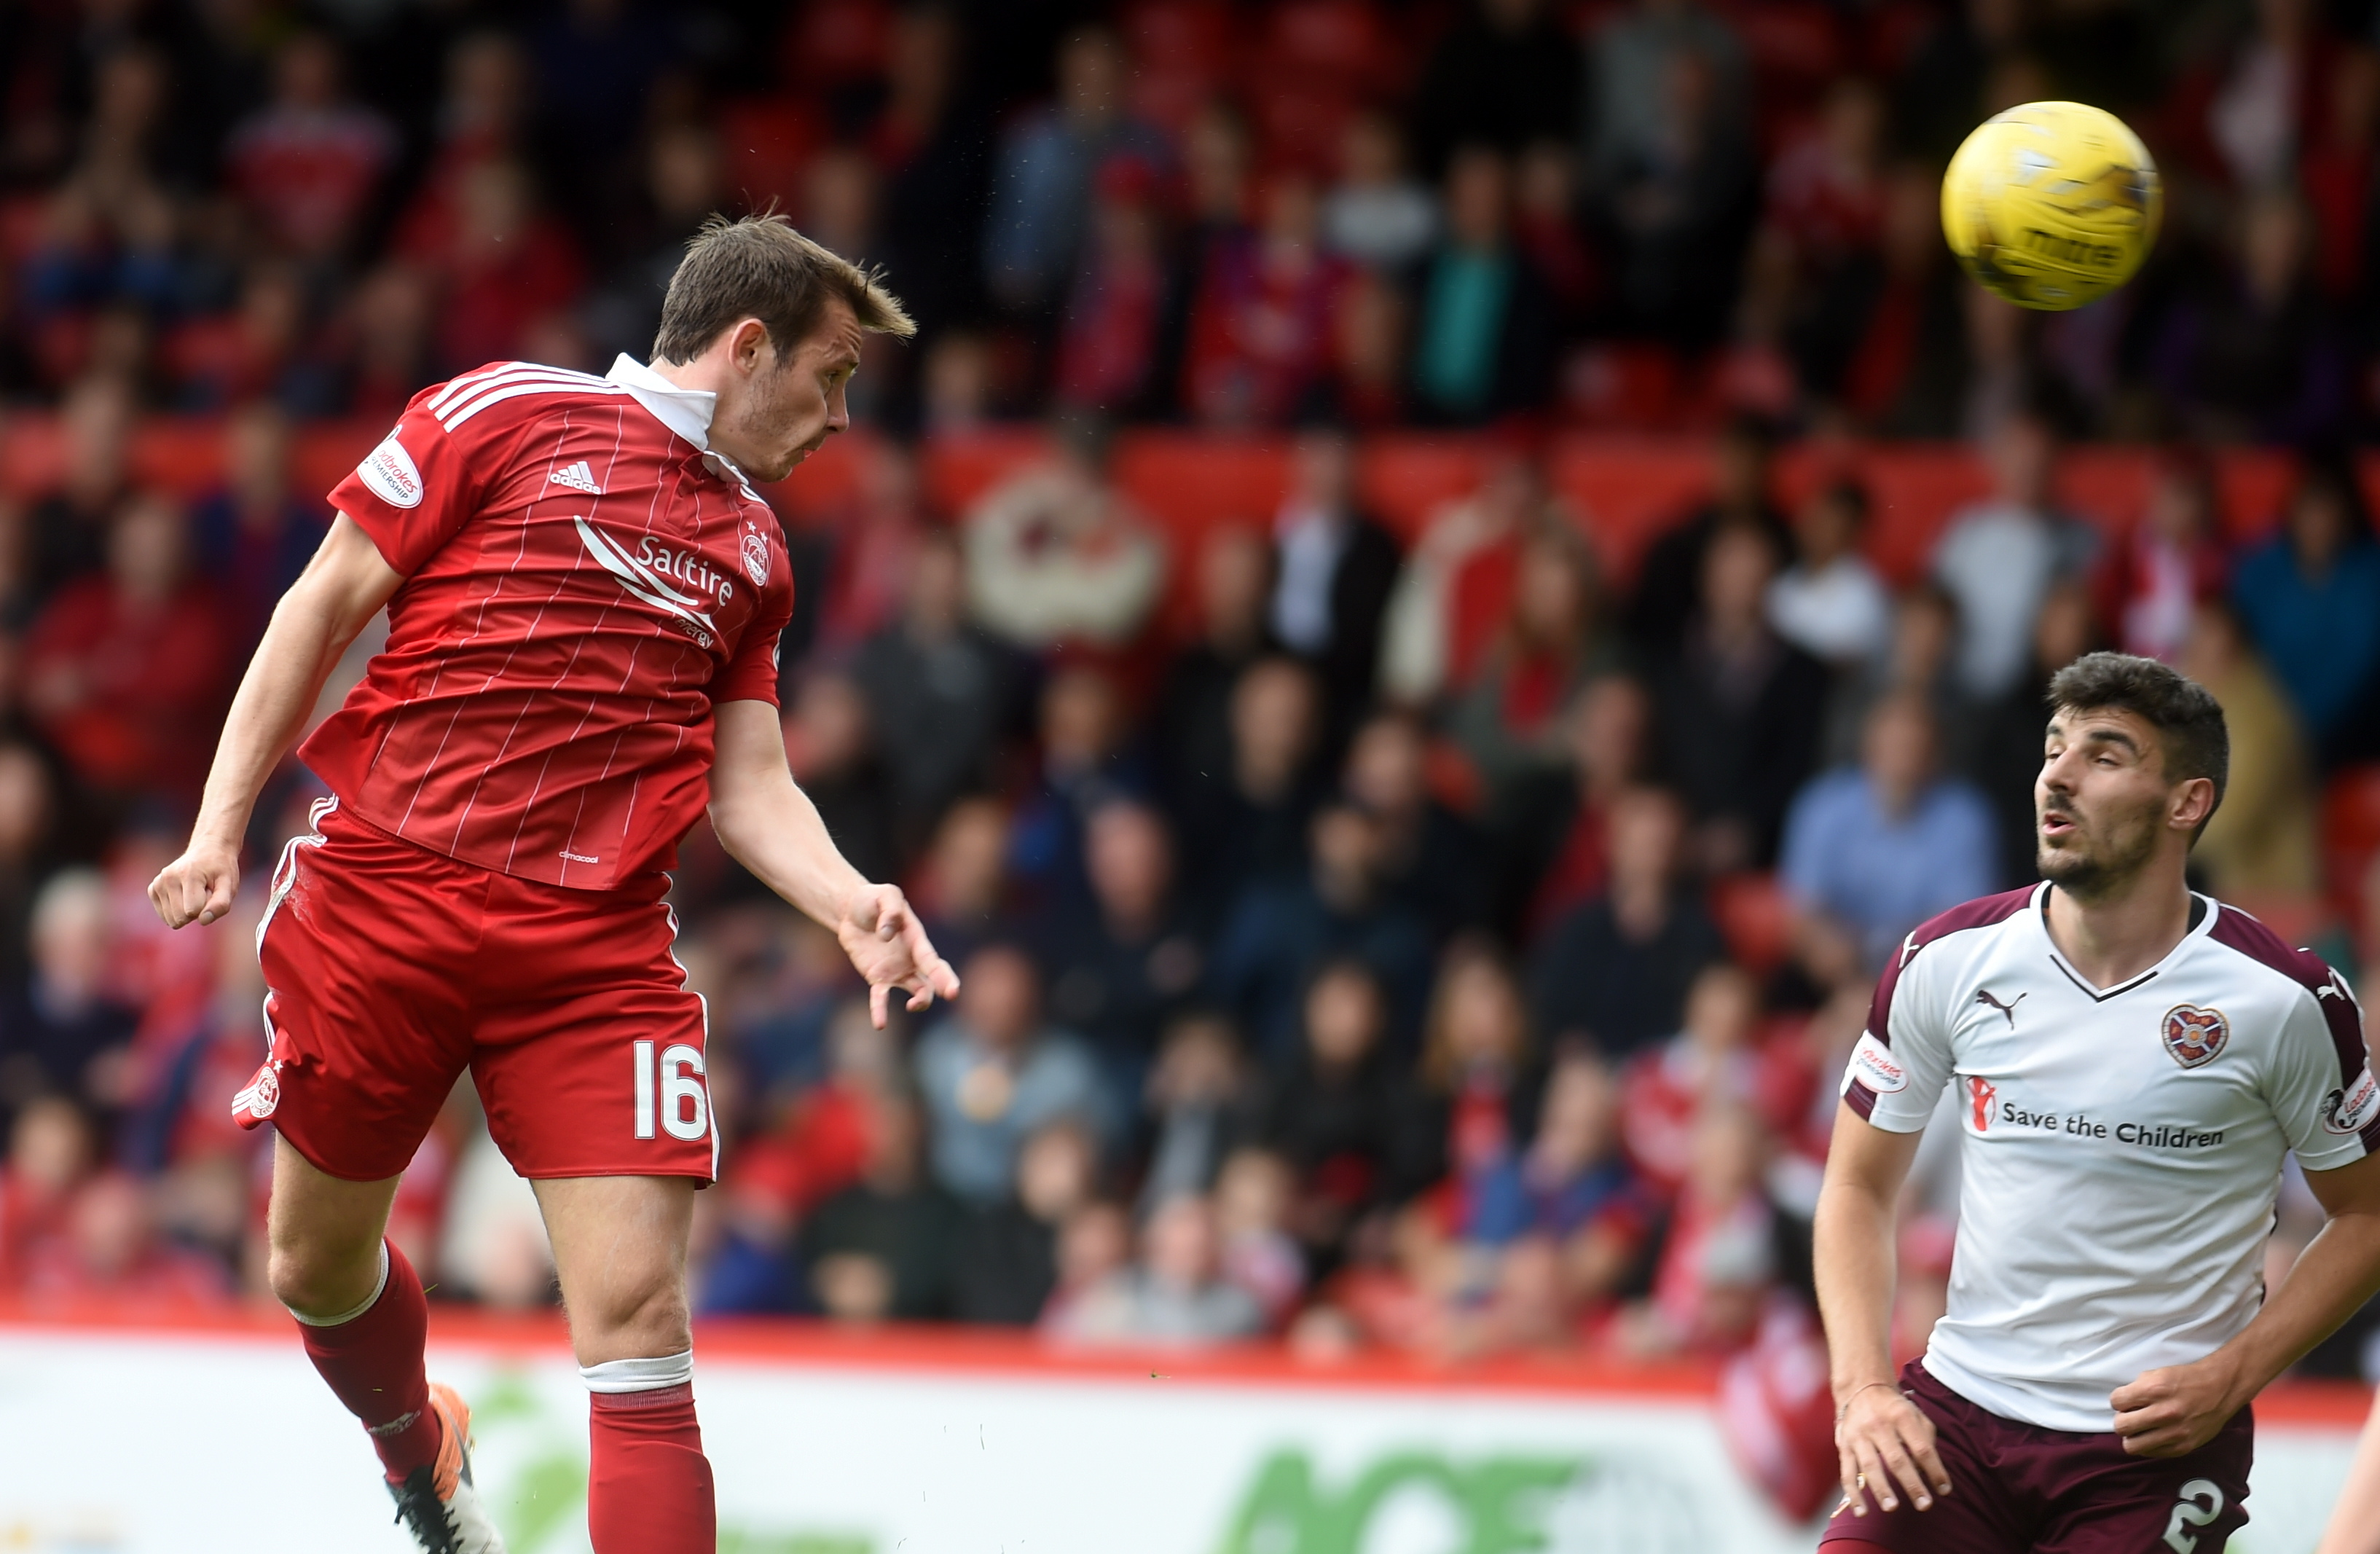 Peter Pawlett in action against Hearts.